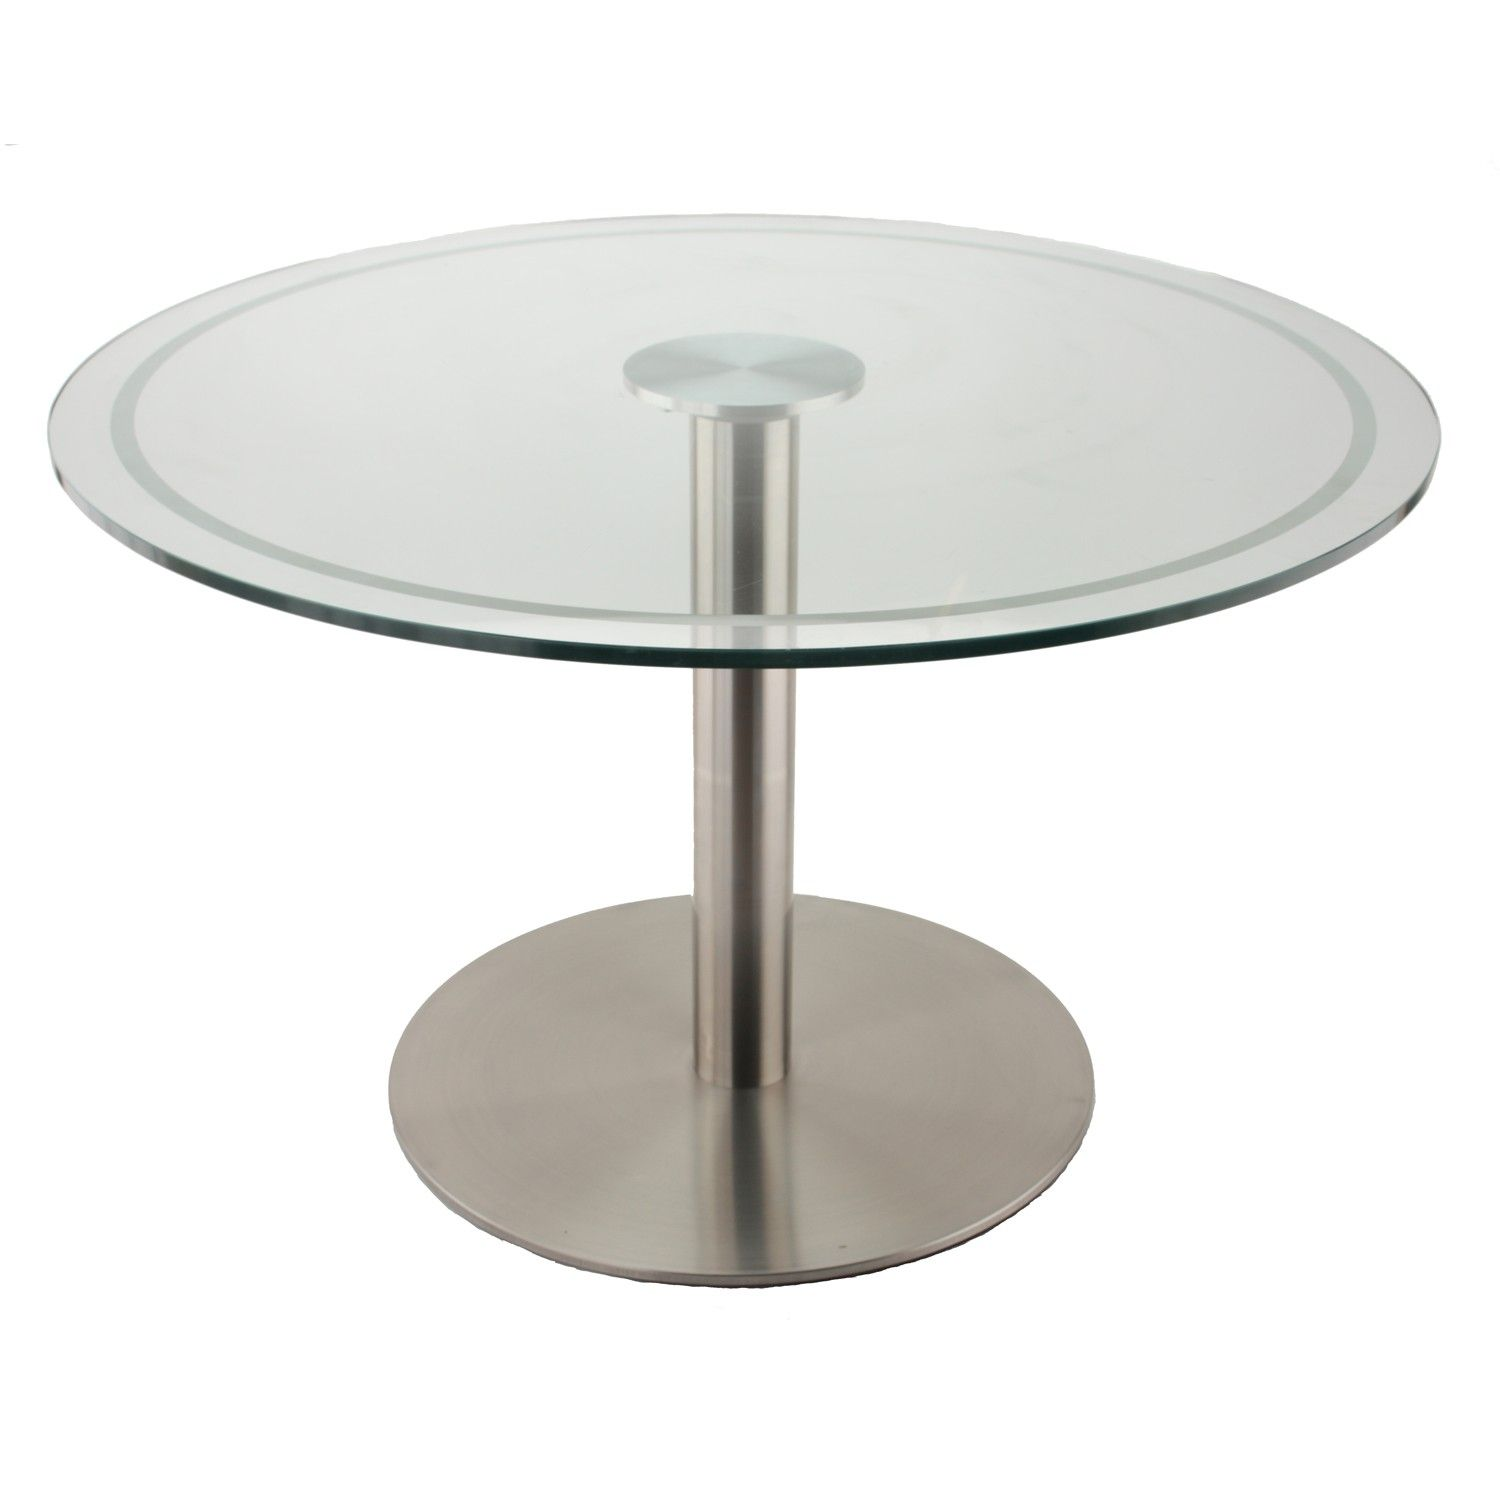 The RFL Stainless Steel Table Base With Glass Table Top Using - Glass tops for bedroom furniture